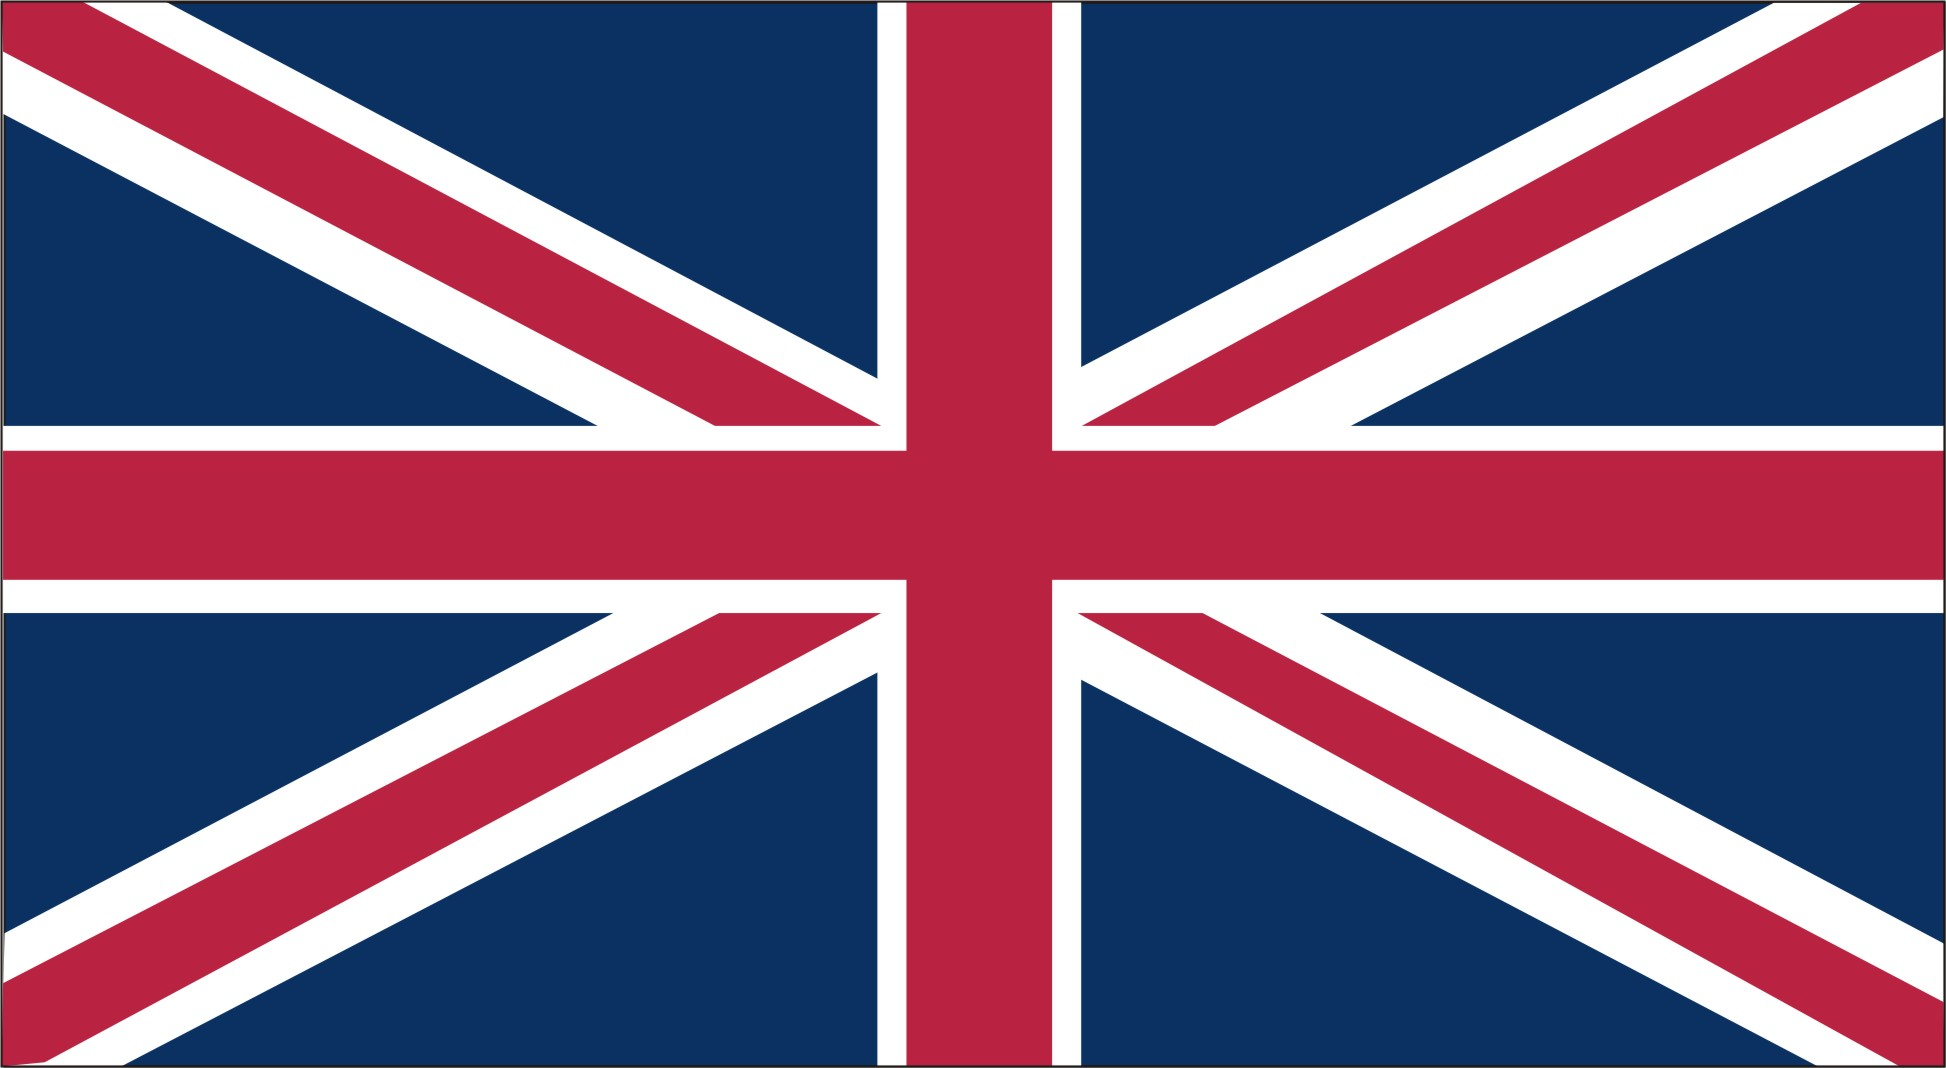 United-Kingdomflag.jpg